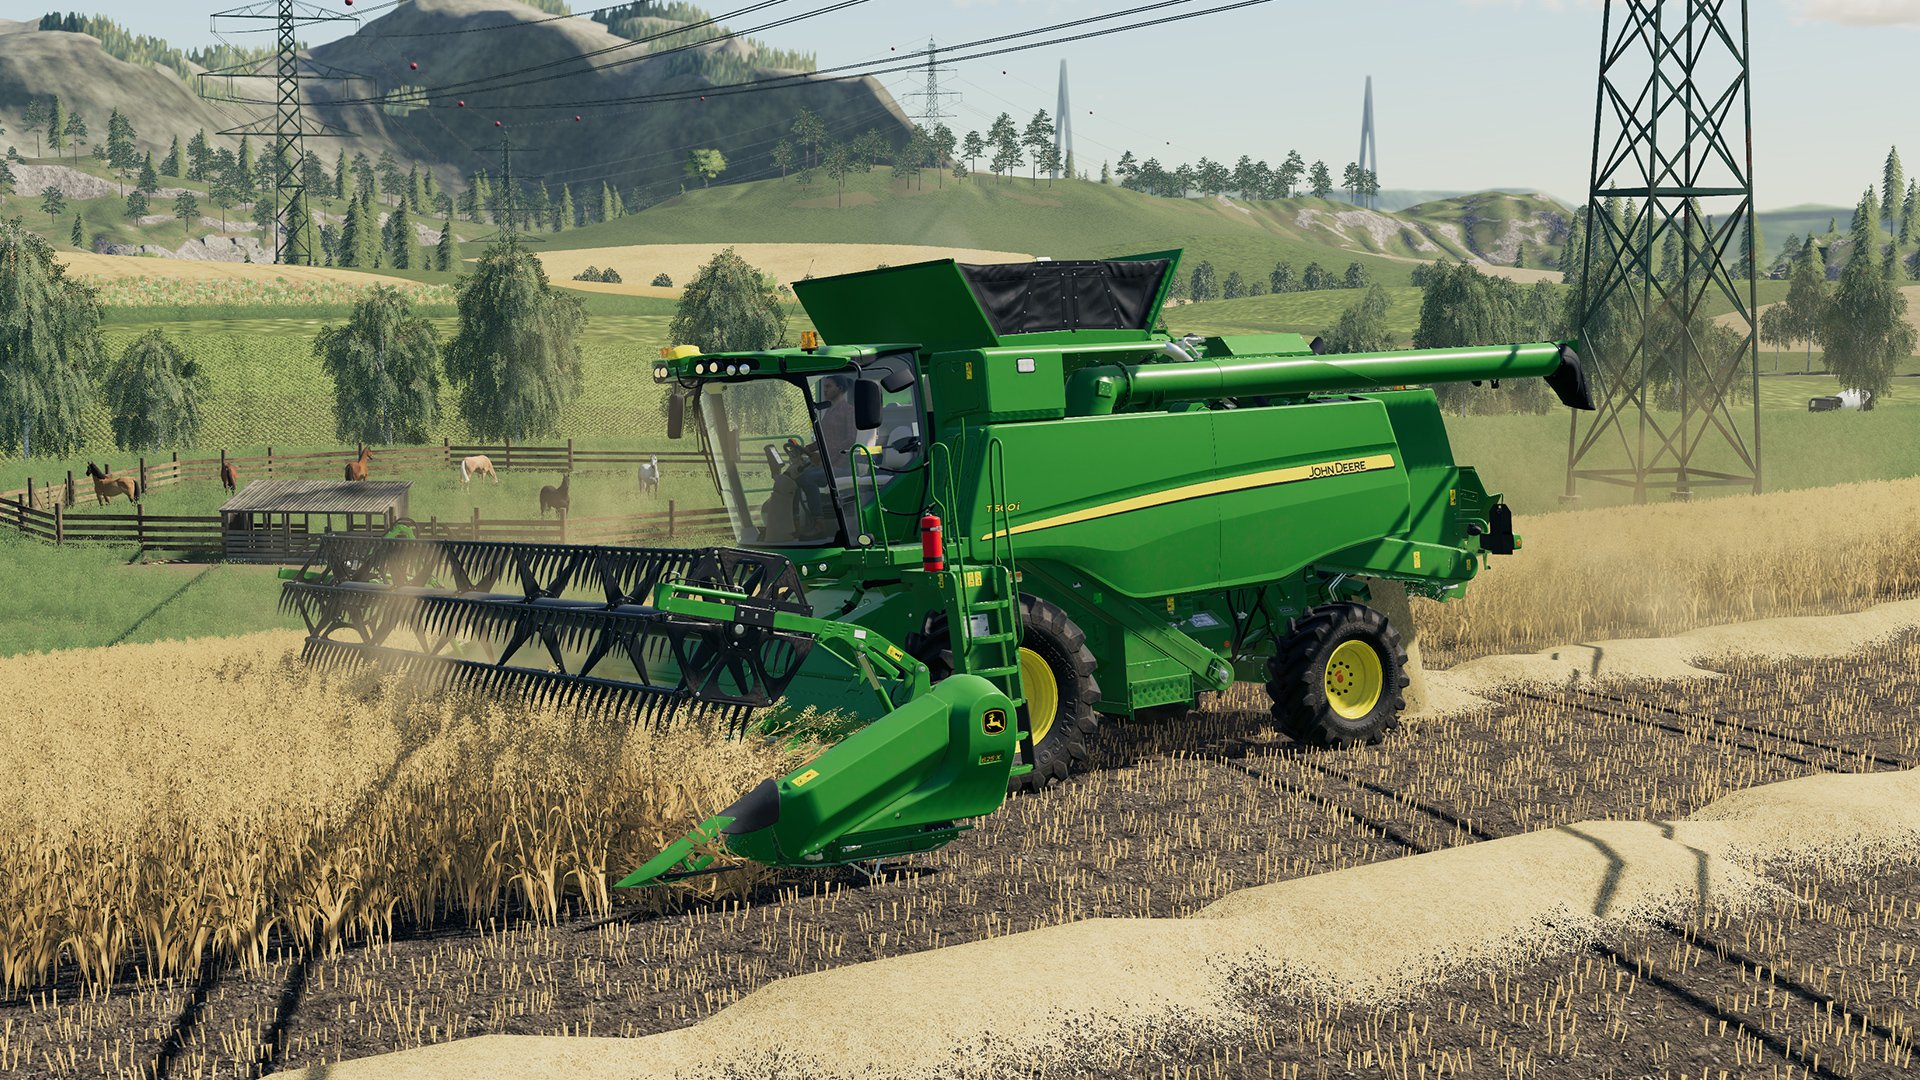 Season 2 of the Farming Simulator Championship will include a new 3v3 mode.